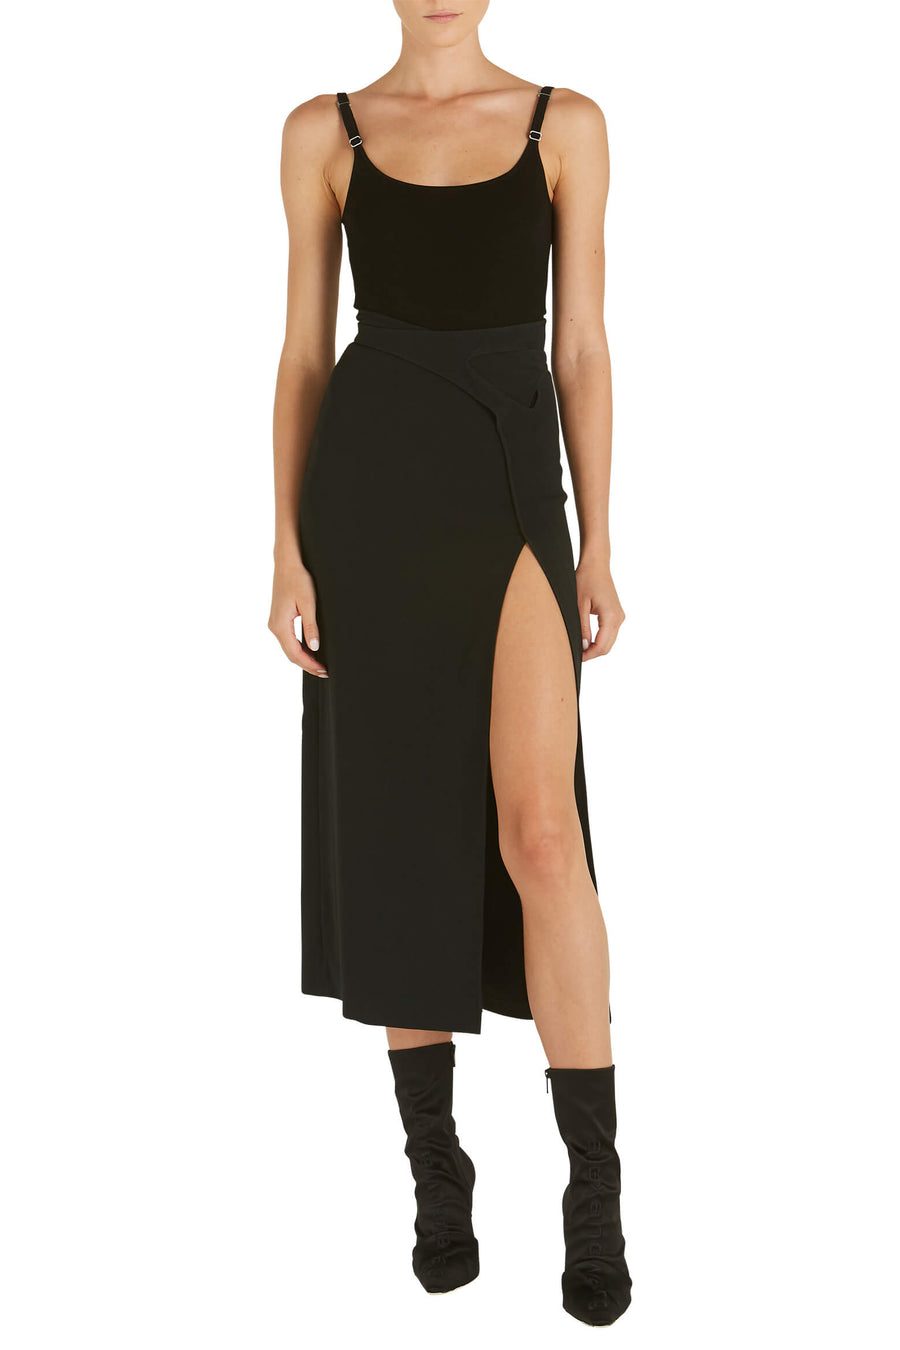 Dion Lee Garter Bodysuit from The New Trend